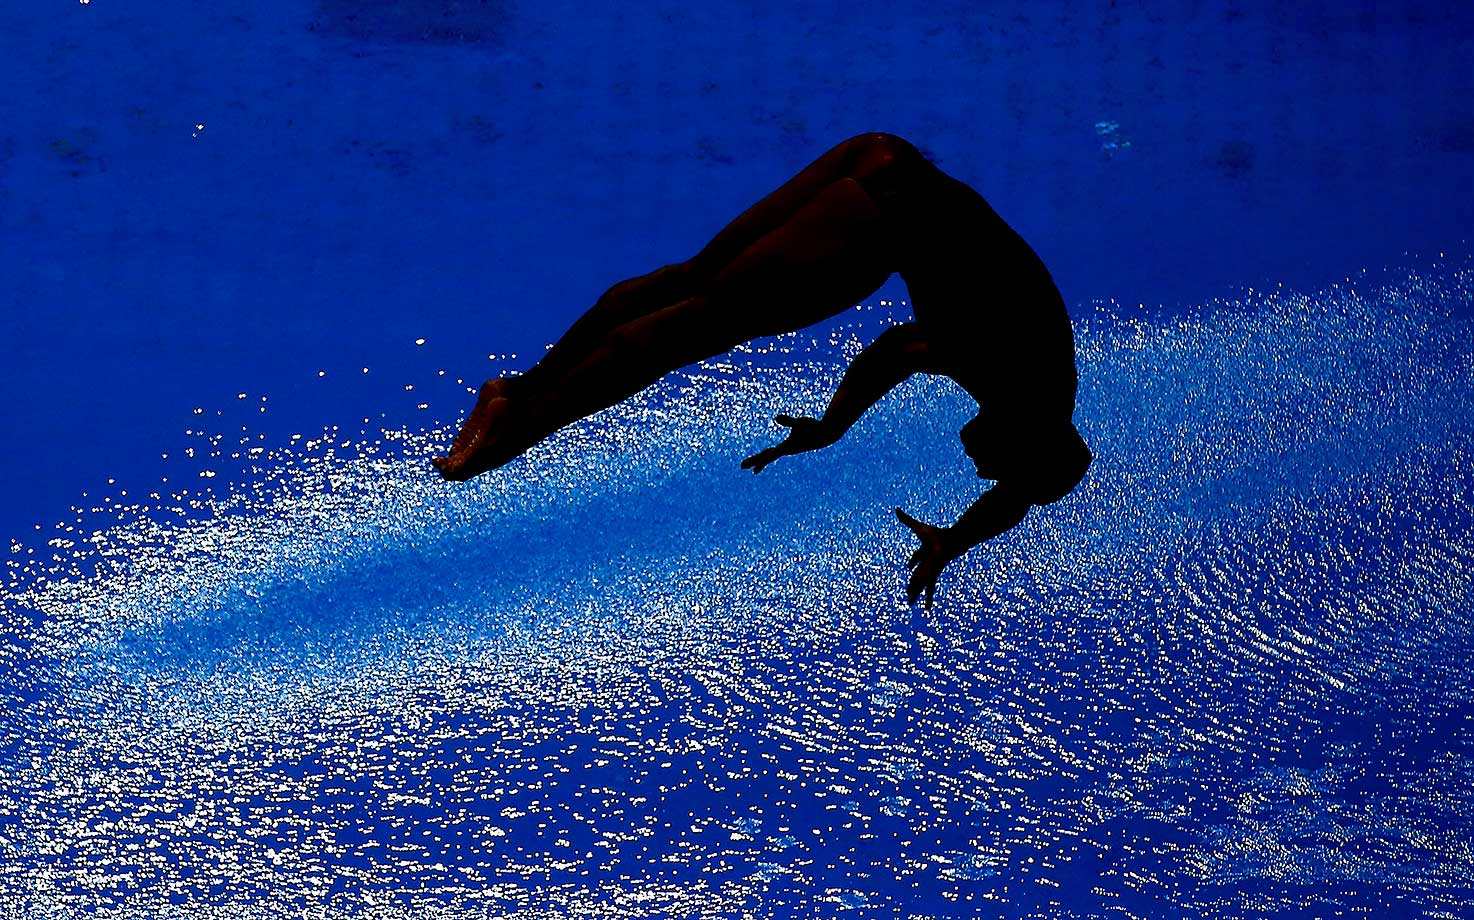 A diver competes in the 3m Synchro Springboard Final during day one of the FINA/NVC Diving World Series 2016.